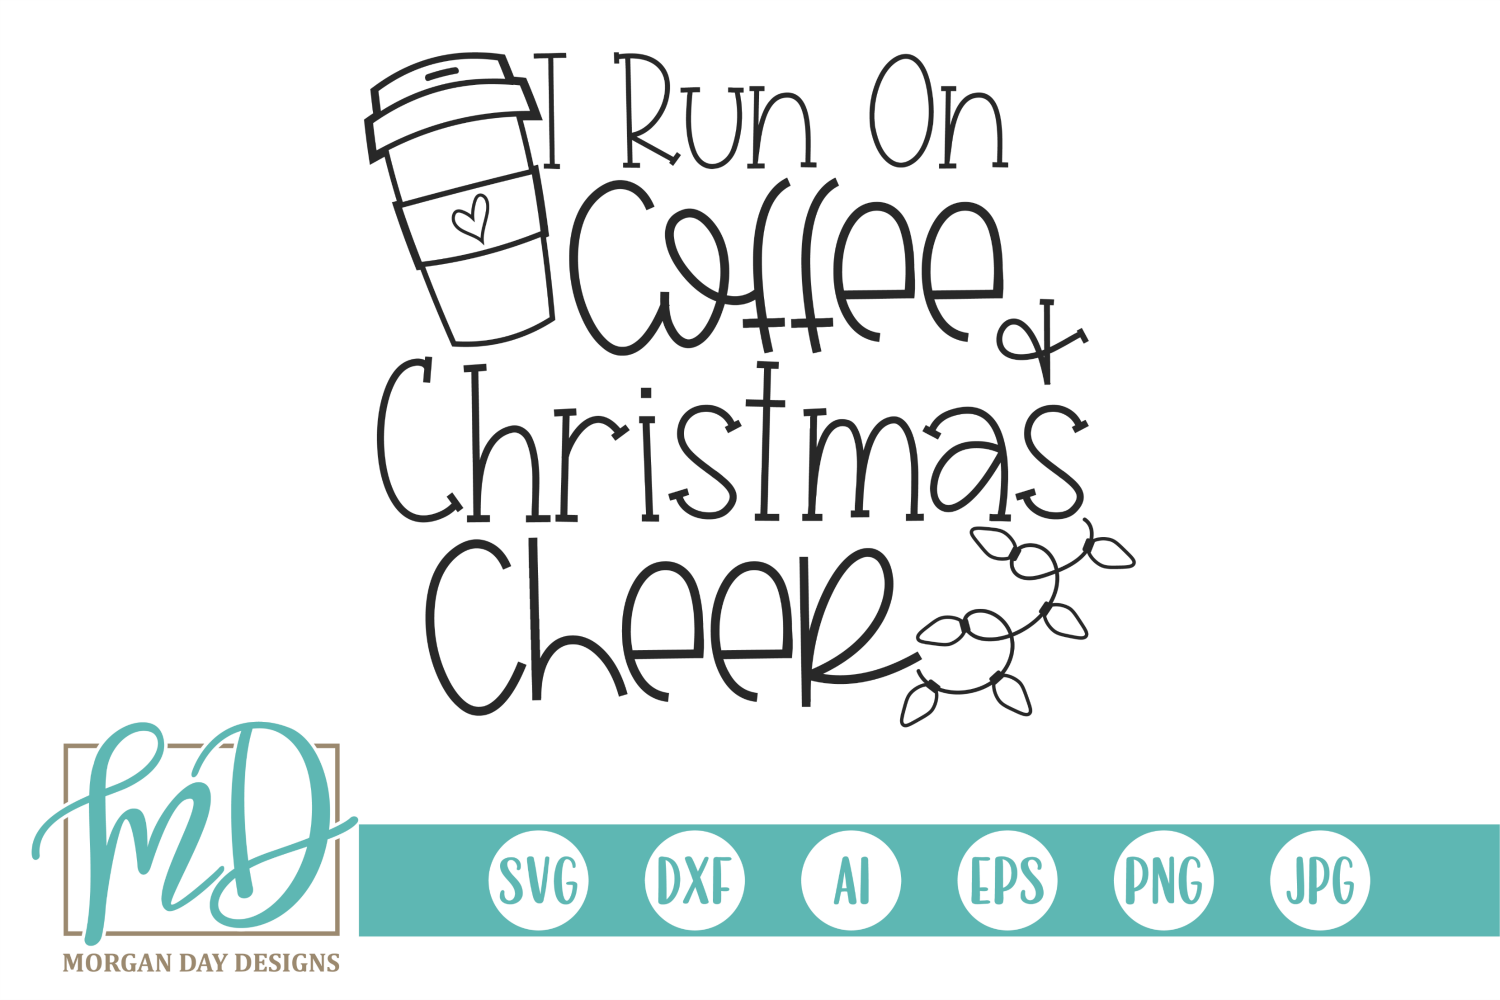 Download Free I Run On Coffee And Christmas Cheer Graphic By Morgan Day for Cricut Explore, Silhouette and other cutting machines.